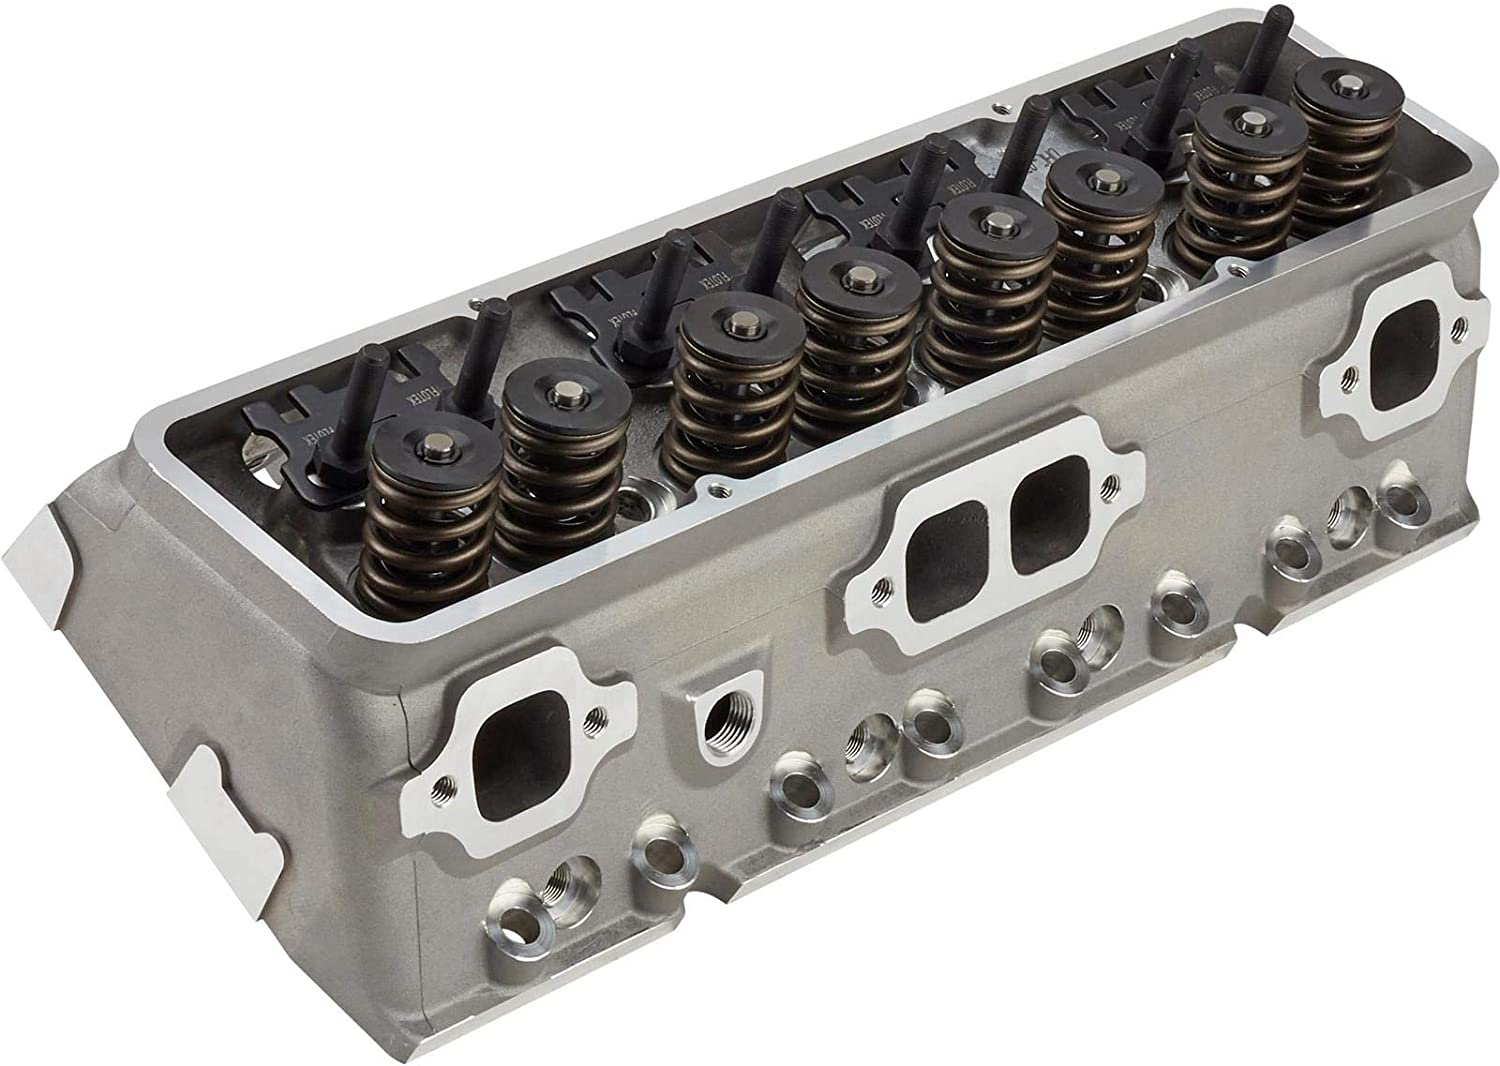 Chevy SBC Assembled Weekly update Aluminum Camel Cylinder 461 Double Head Hump 67% OFF of fixed price